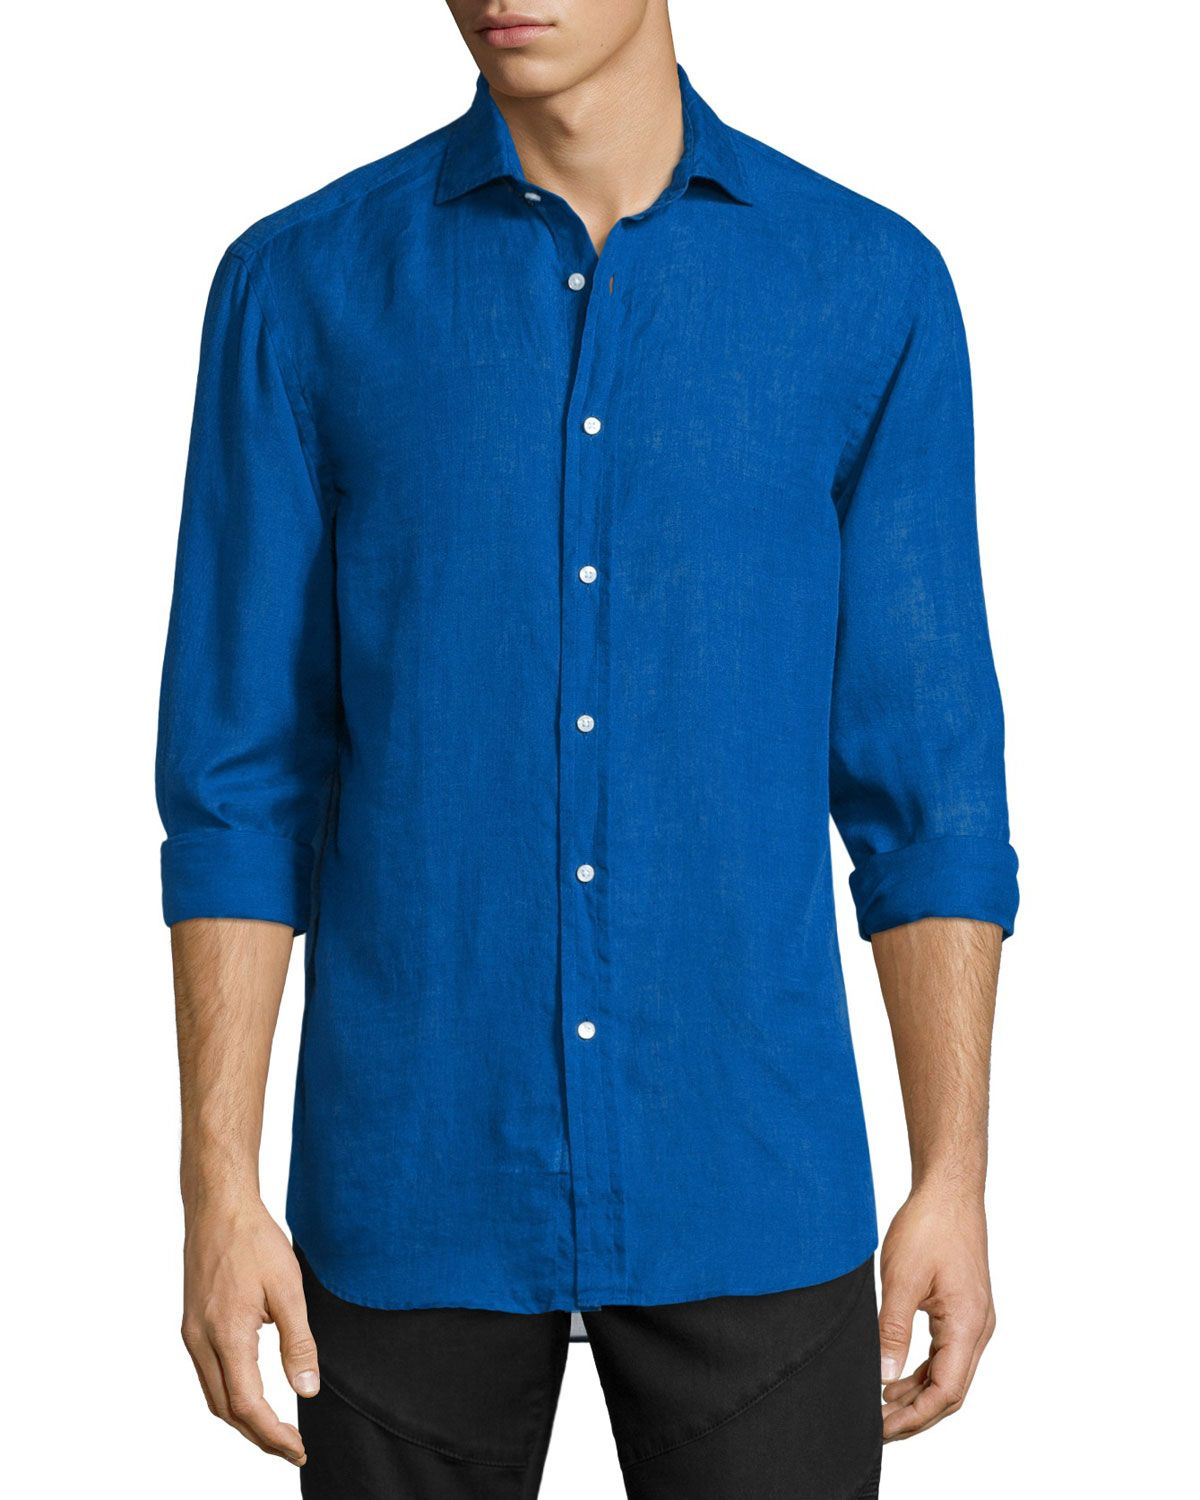 1c6849df RALPH LAUREN SOLID LINEN/COTTON LONG-SLEEVE SPORT SHIRT, NAVY ...